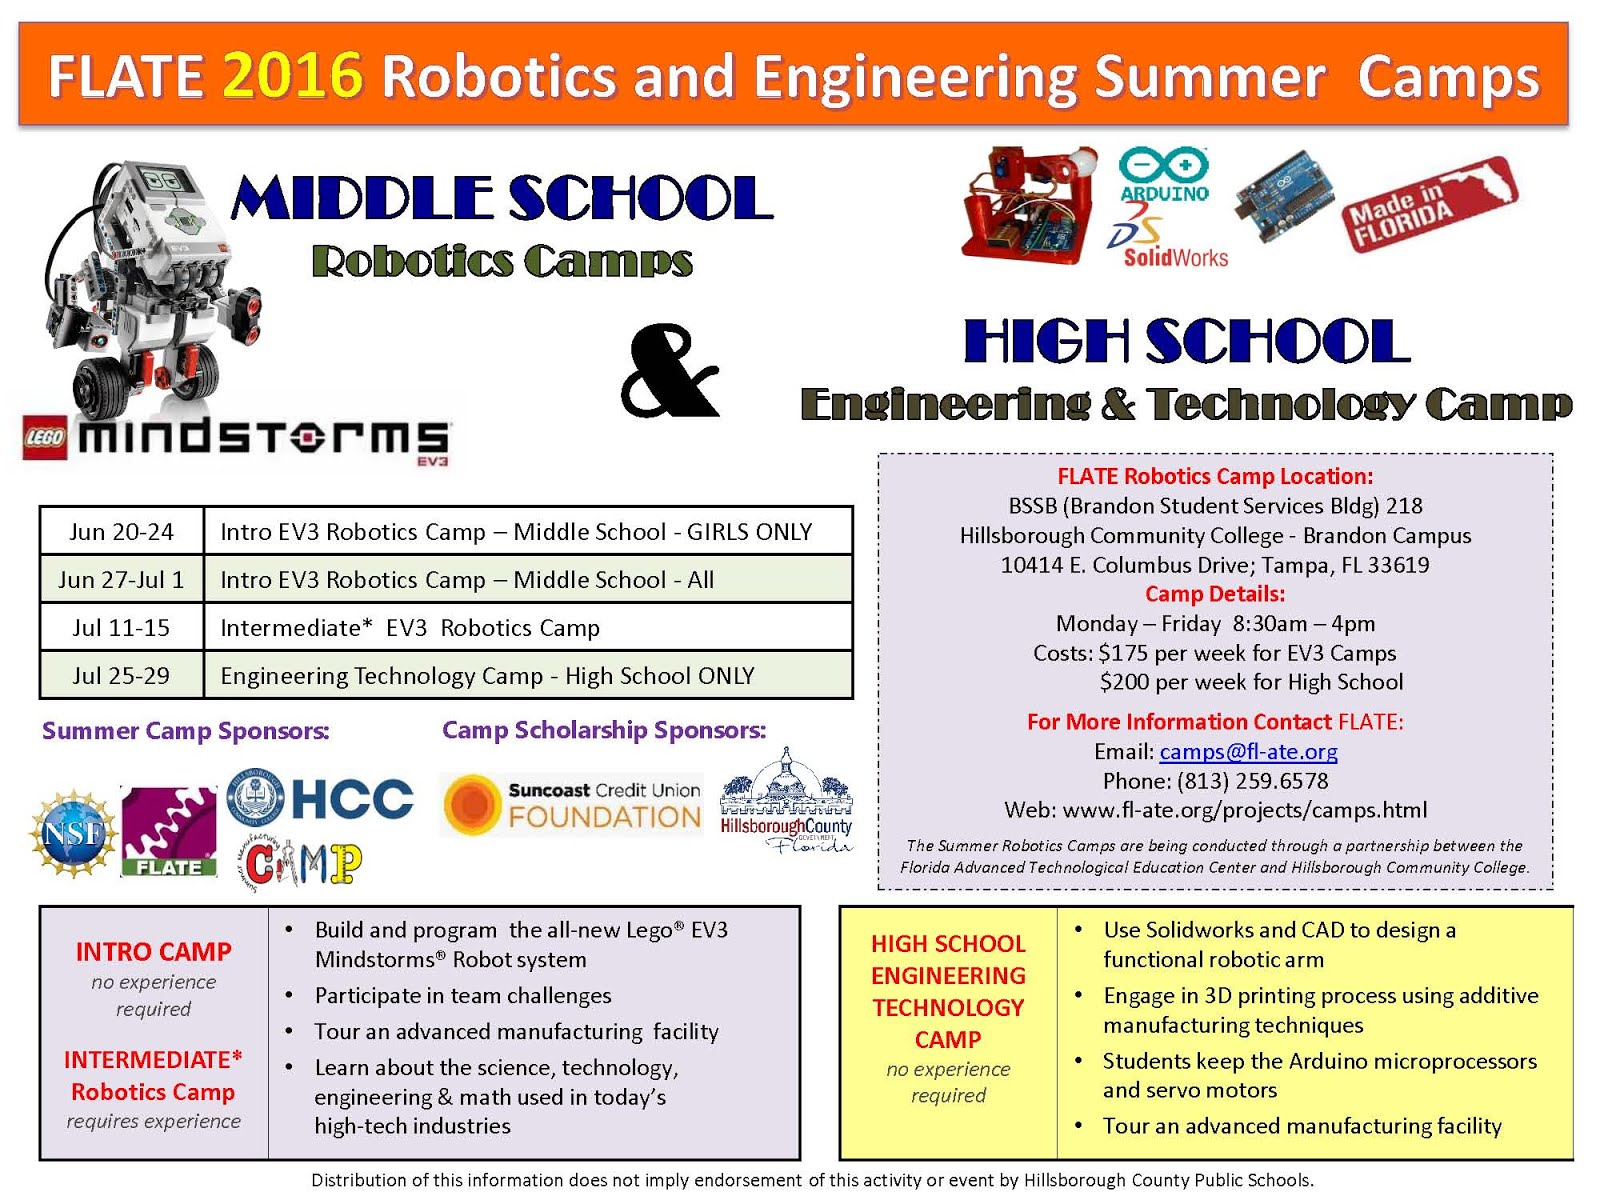 FLATE 2016 Robotics & Engineering Summer Camps